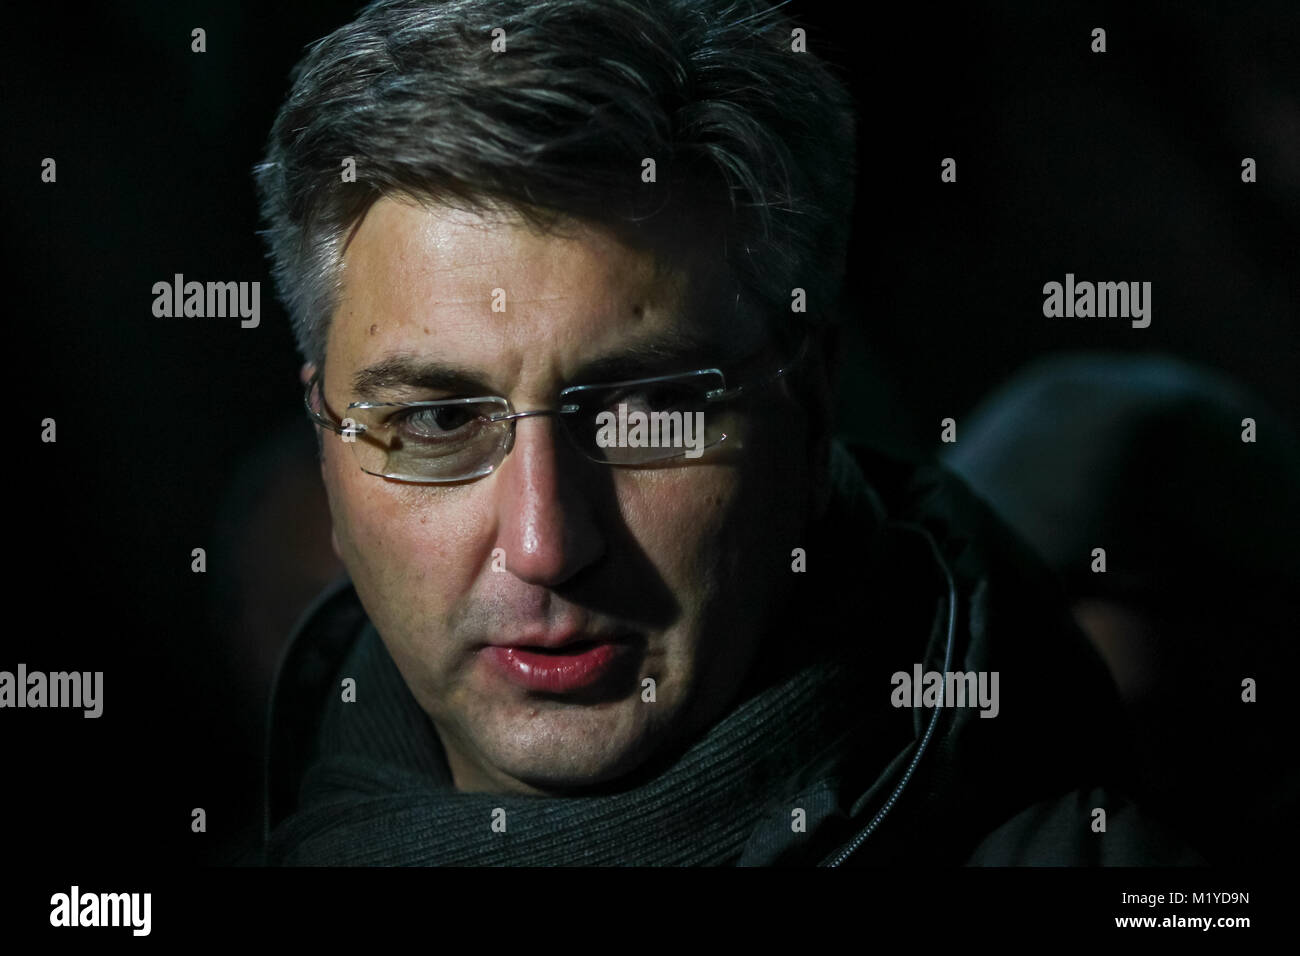 ZAGREB, CROATIA - JANUARY 4, 2018 : Croatian Prime Minister Andrej Plenkovic gives a statement to journalists at - Stock Image